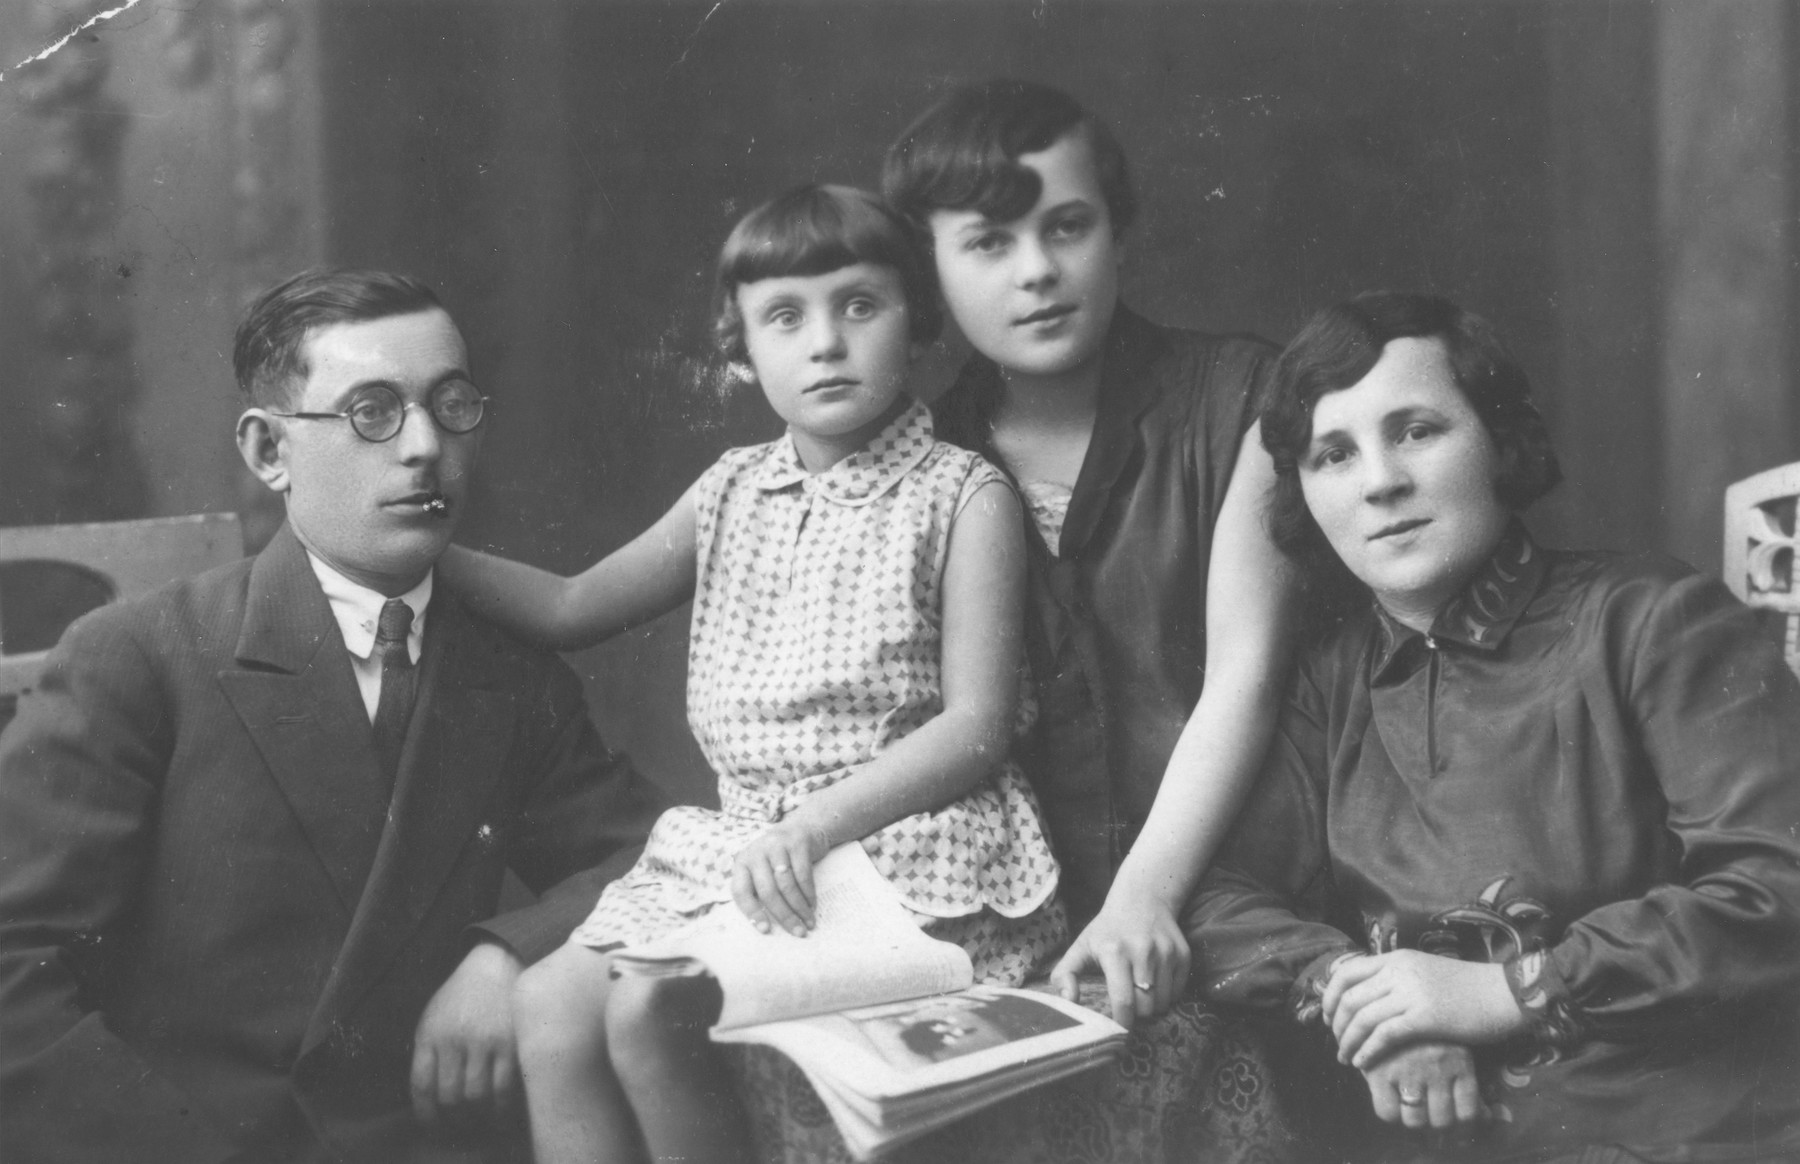 Portrait of the family of Noach Nortman.  While the Nortman children survived the war, Noach and his wife died in Sosnowiec.